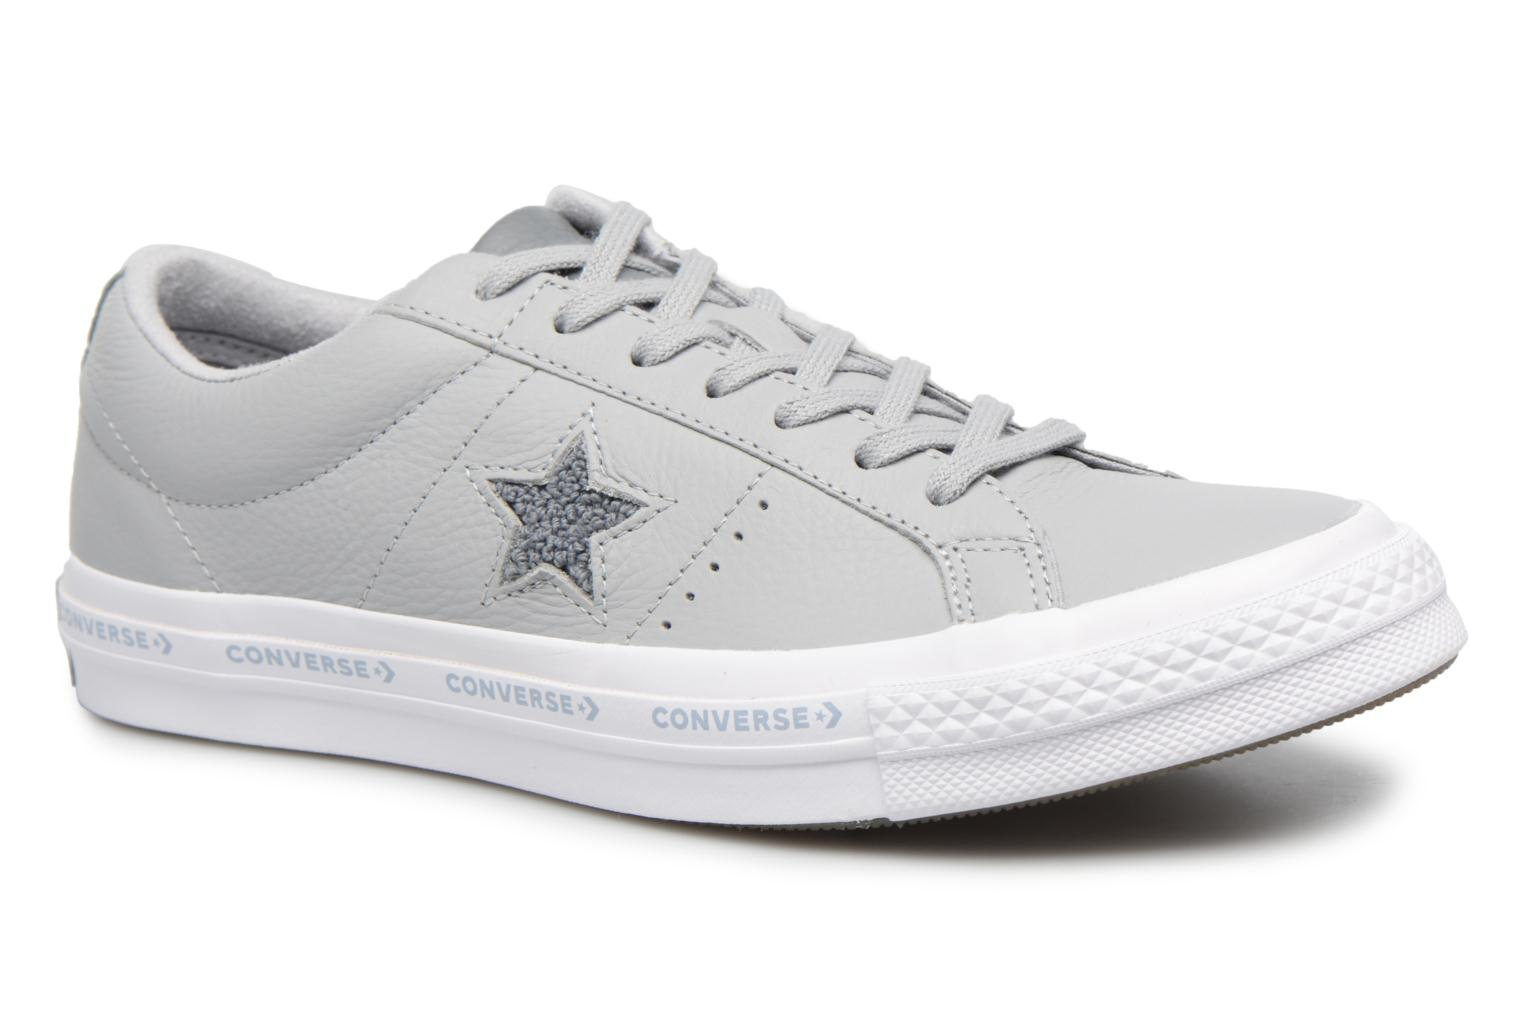 Marques Chaussure homme Converse homme One Star Converse Pinstripe Ox Wolf Grey/Cool Grey/White